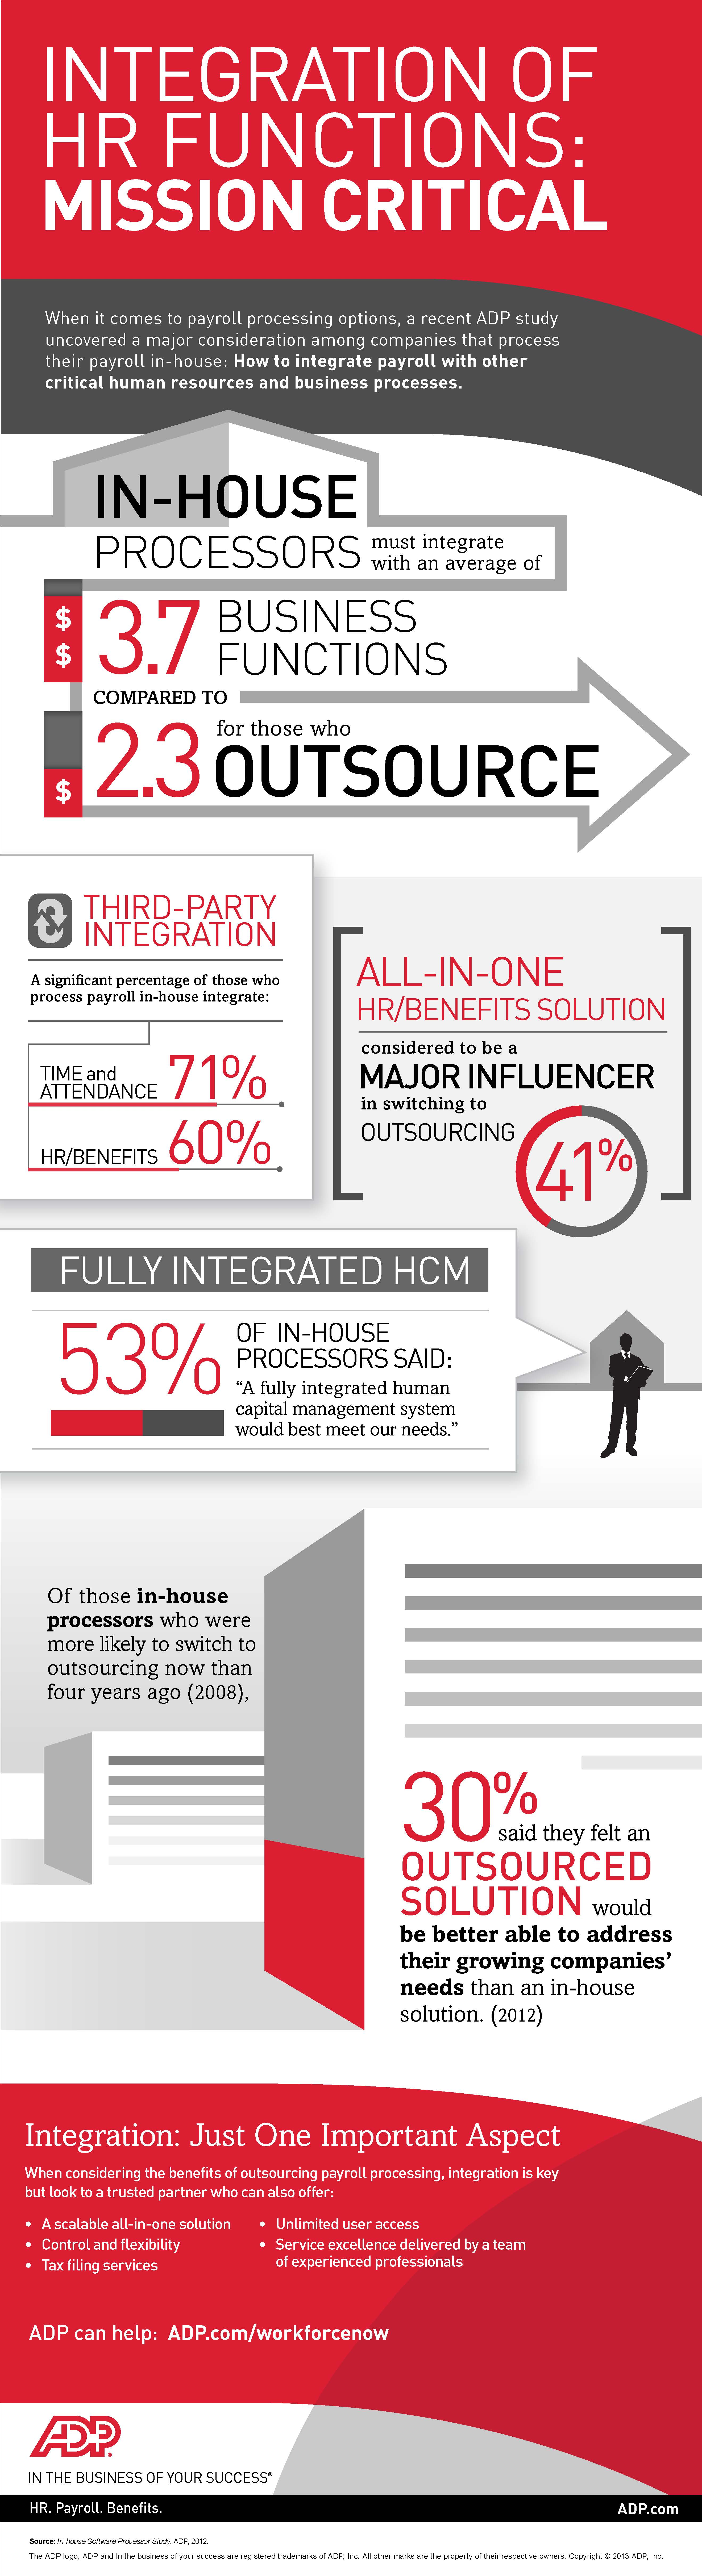 Integration HR Functions infographic